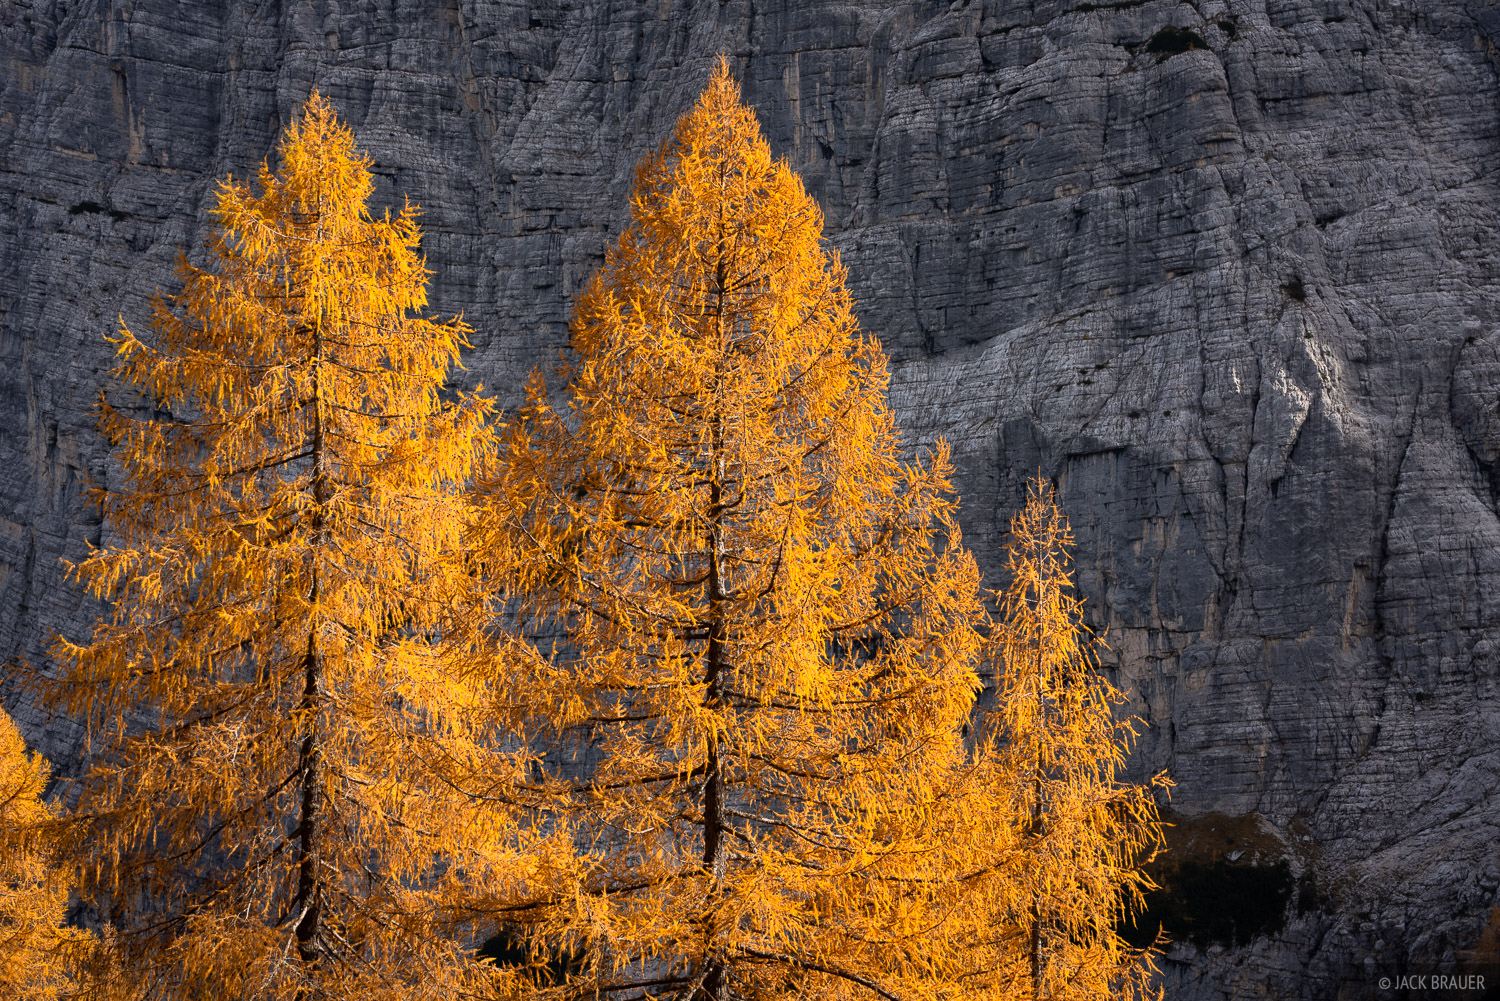 Golden larch trees in the Dolomites.